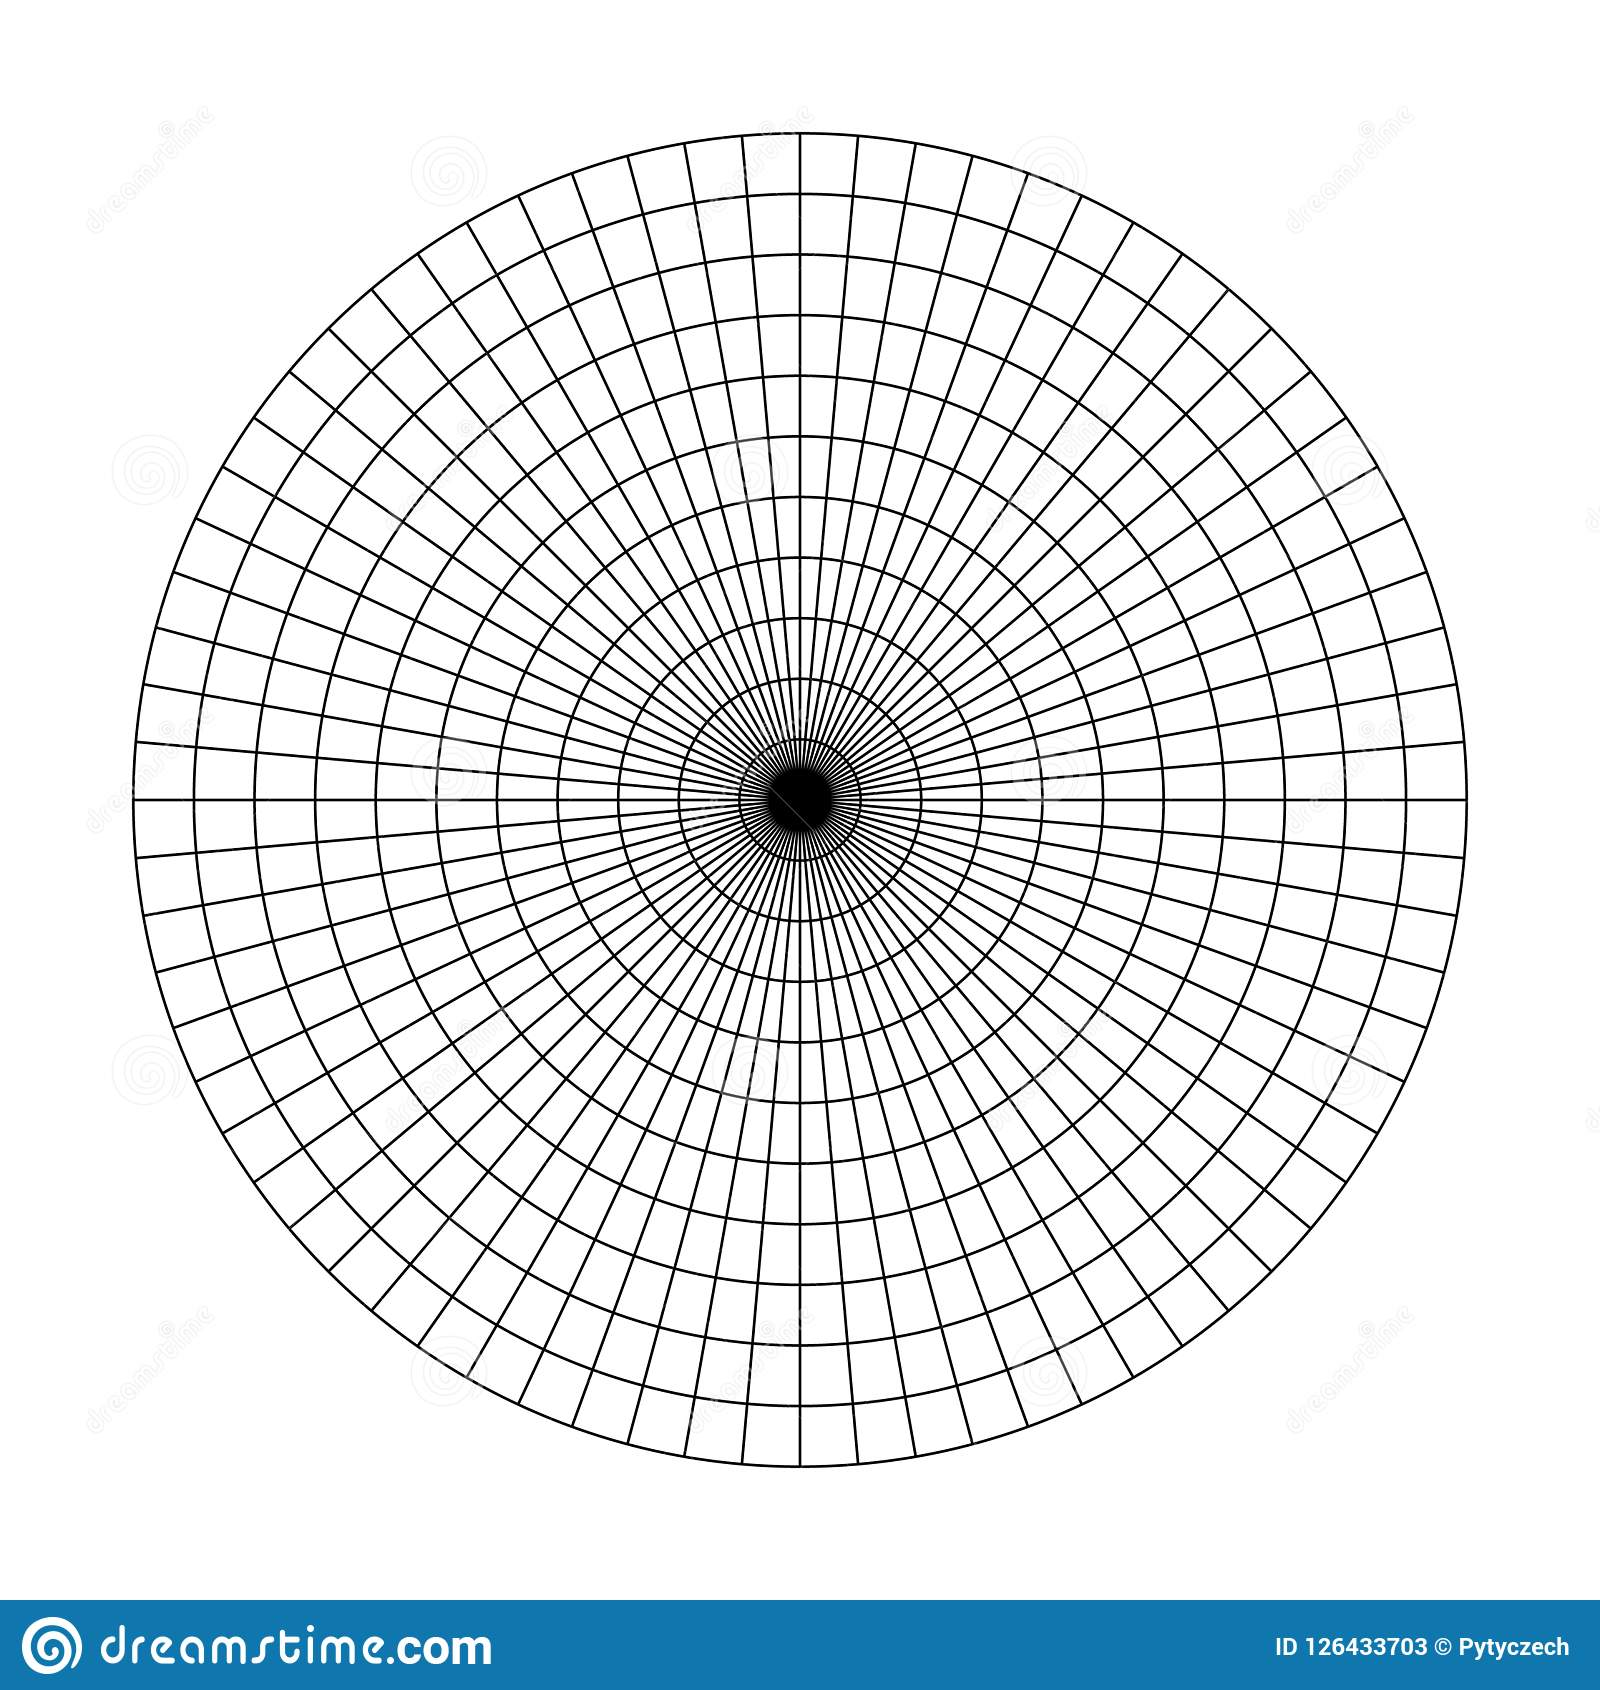 Polar Grid Of 10 Concentric Circles And 5degrees Steps